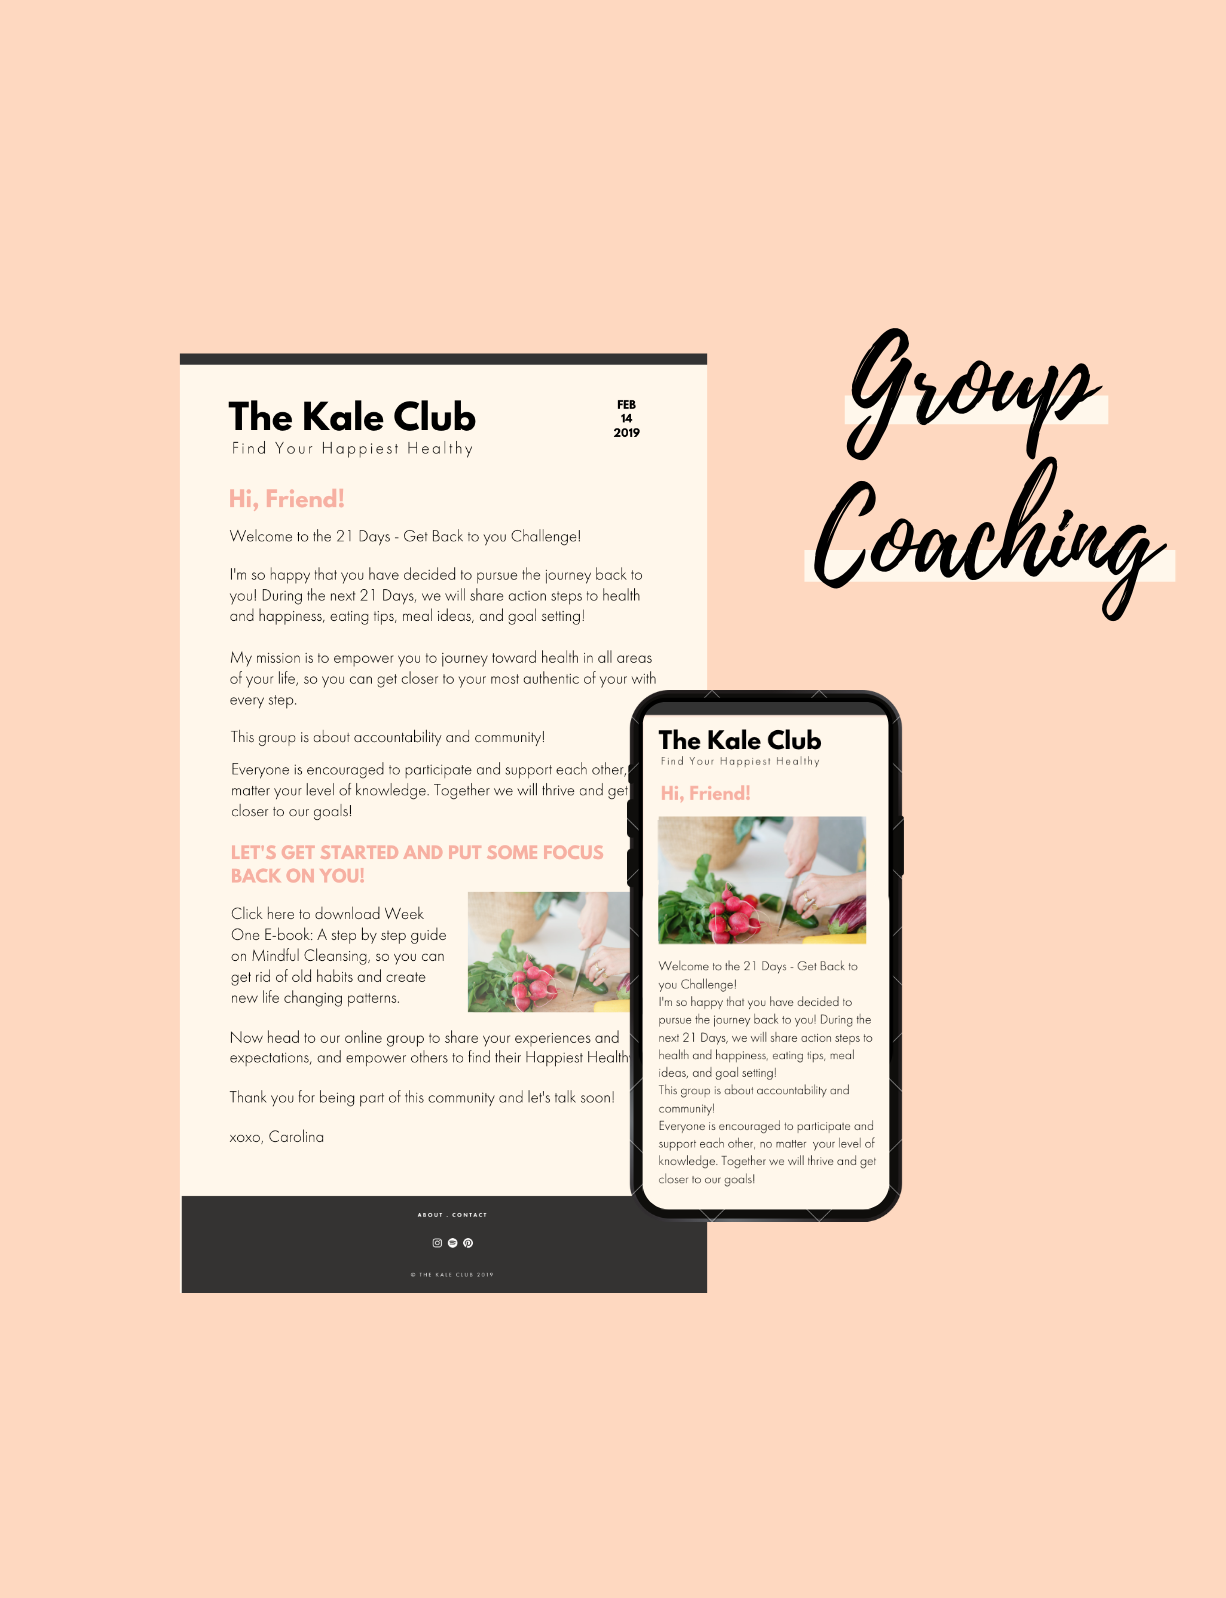 Group Challenge Health Coaching Group the kale club